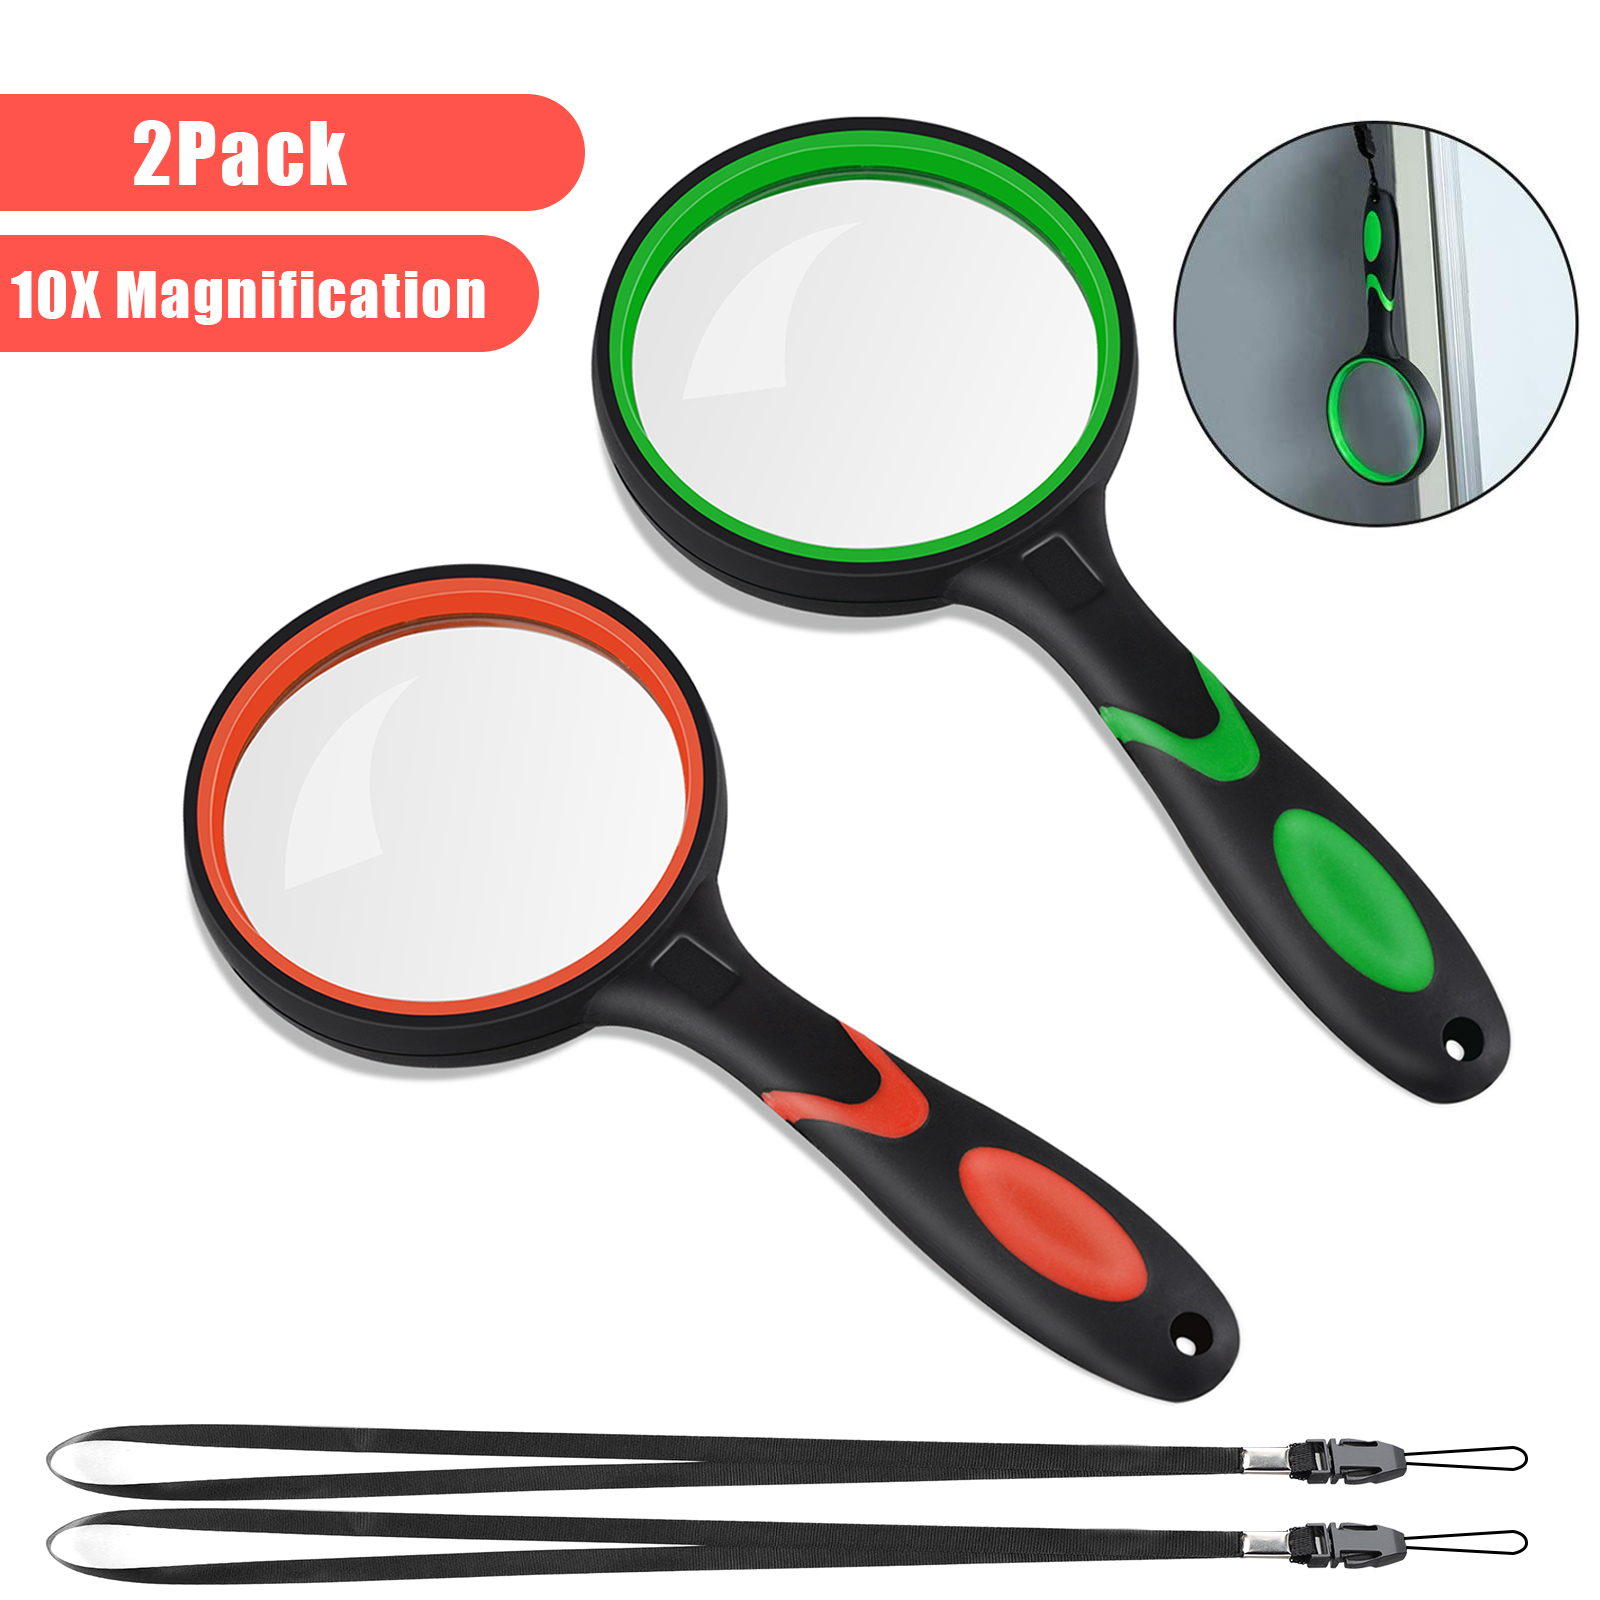 2 Piece Magnifying Glass 10x Handheld Reading Magnifier